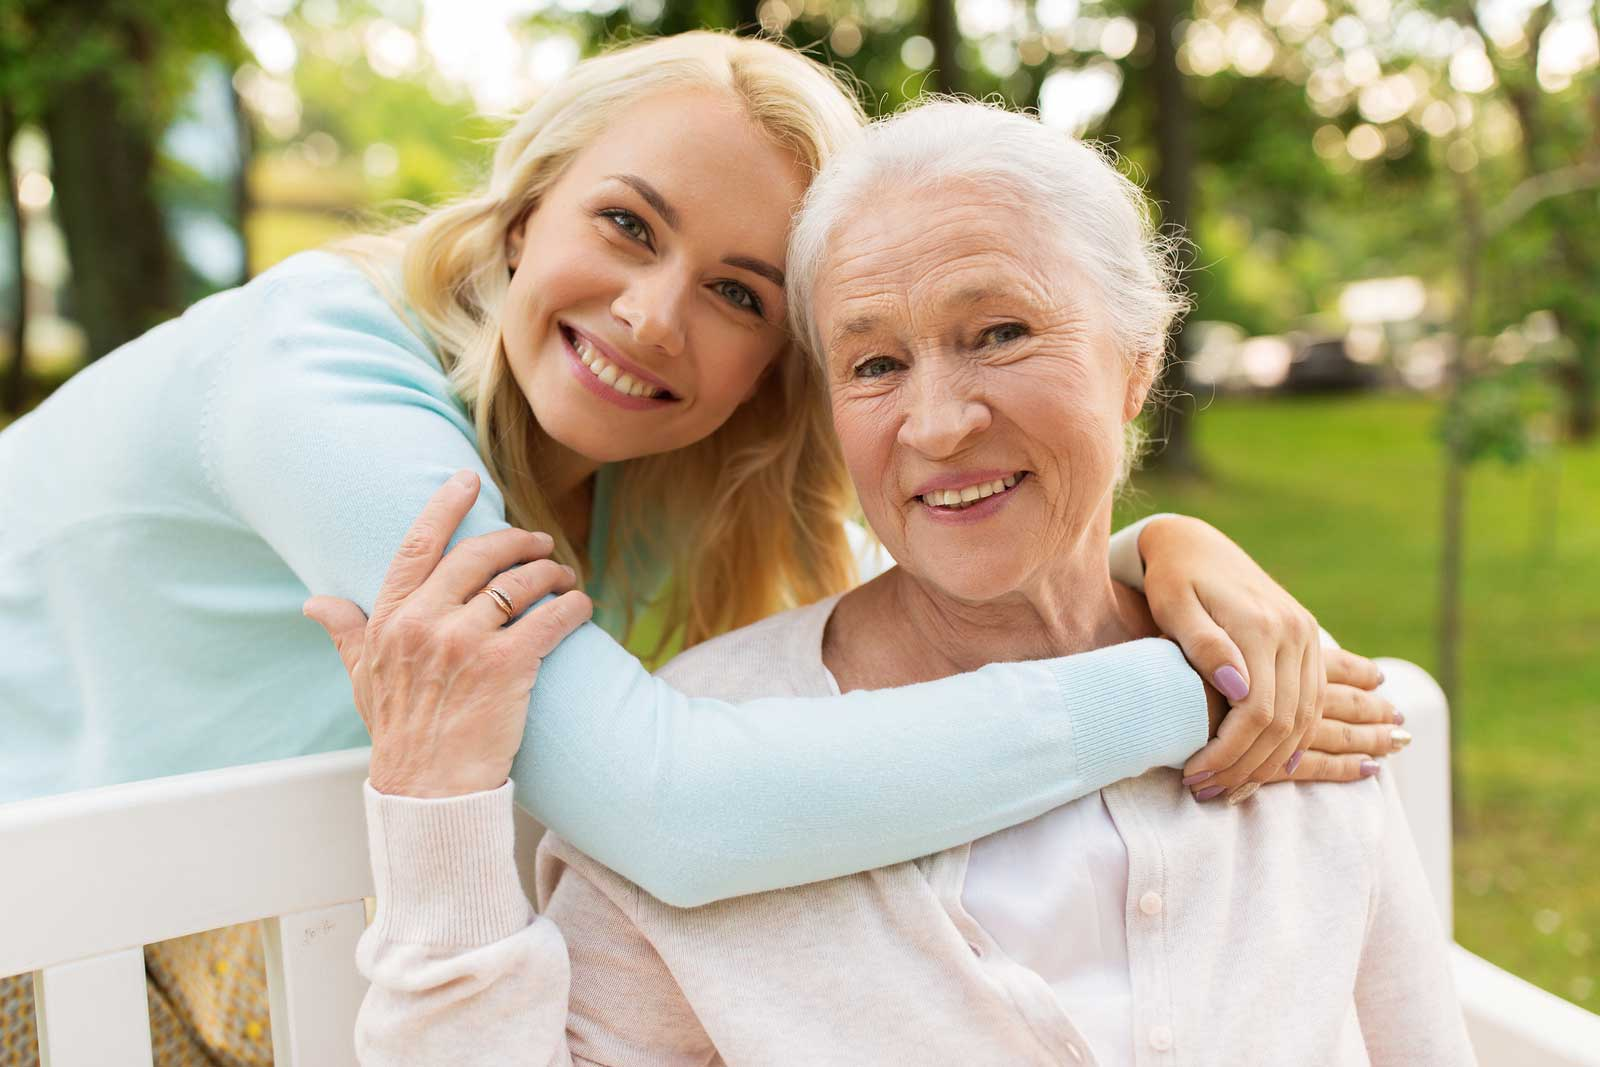 Learn how to make life easier with general home safety tips for seniors